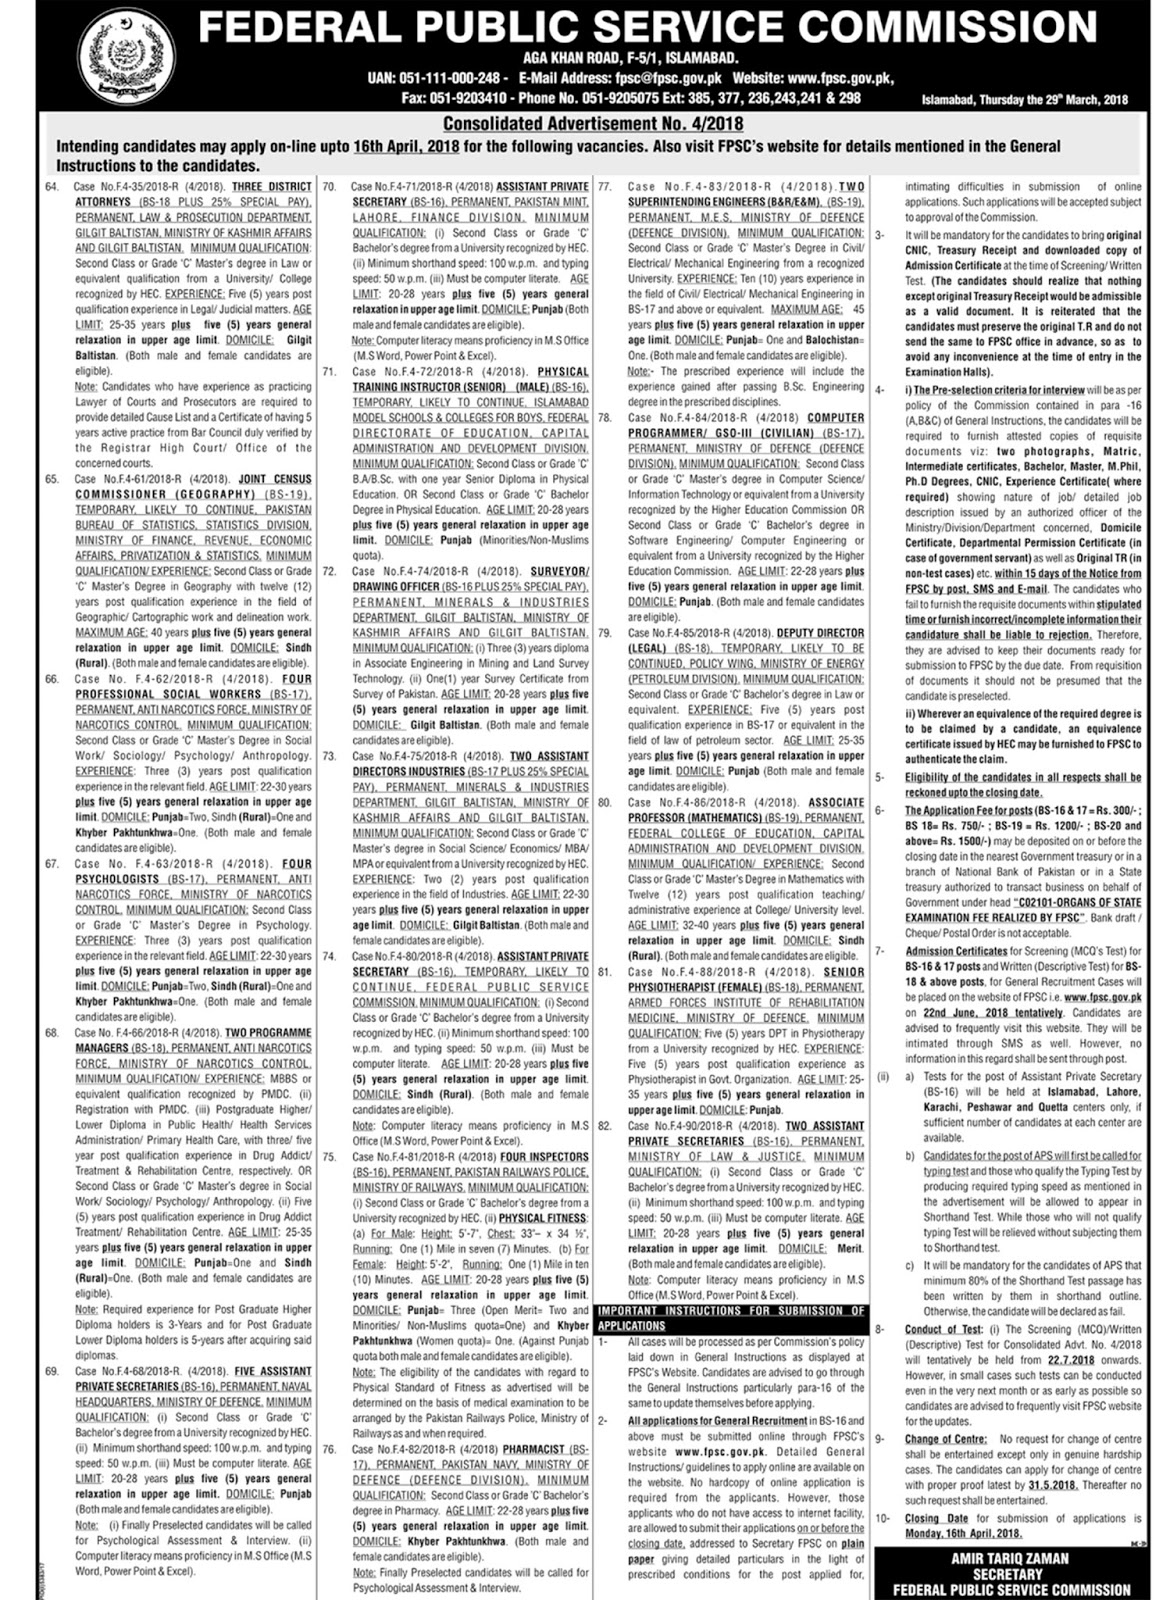 Advertisement No 4/2018 Apri